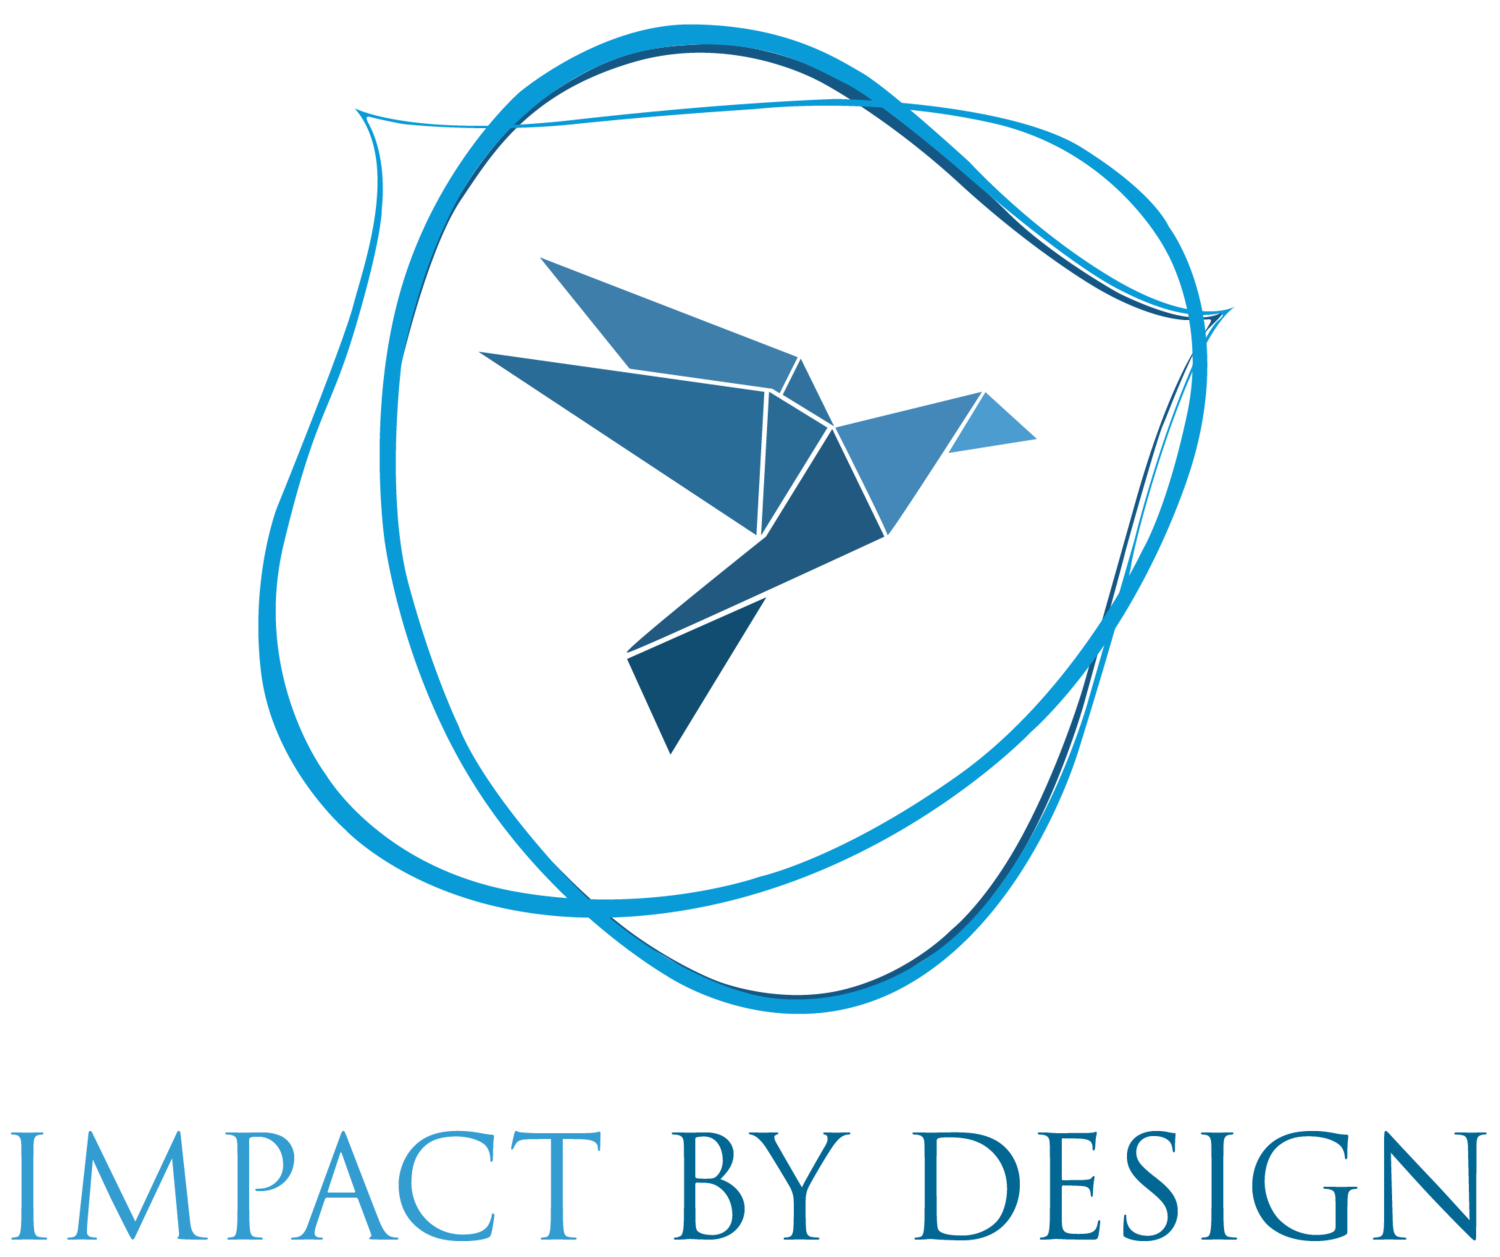 Impact by Design